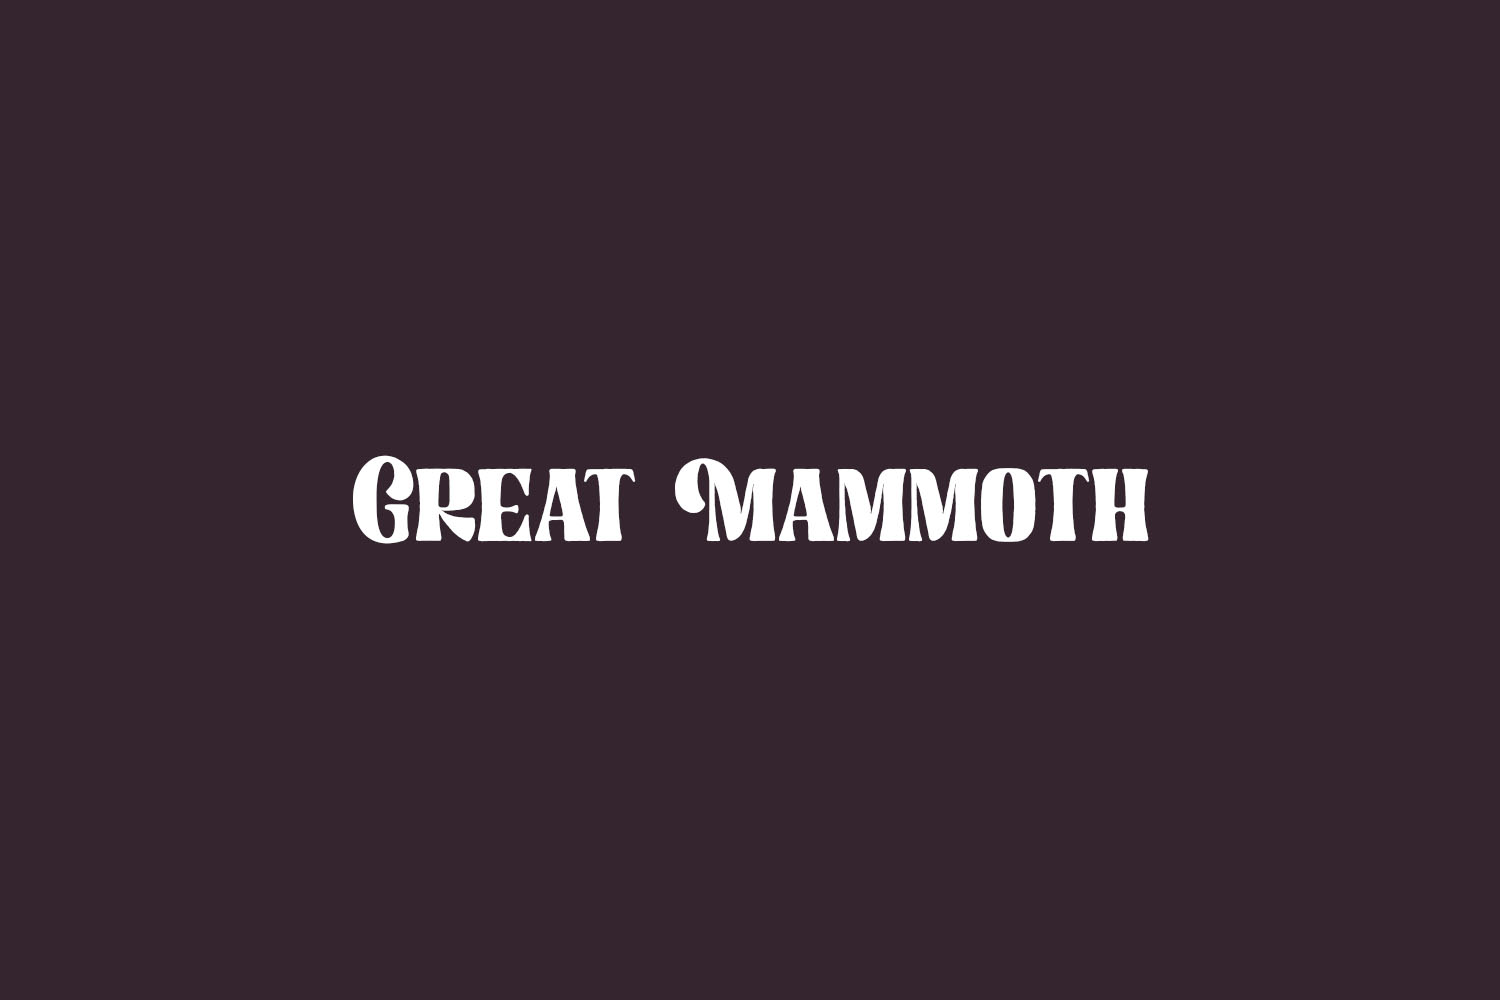 Great Mammoth Free Font